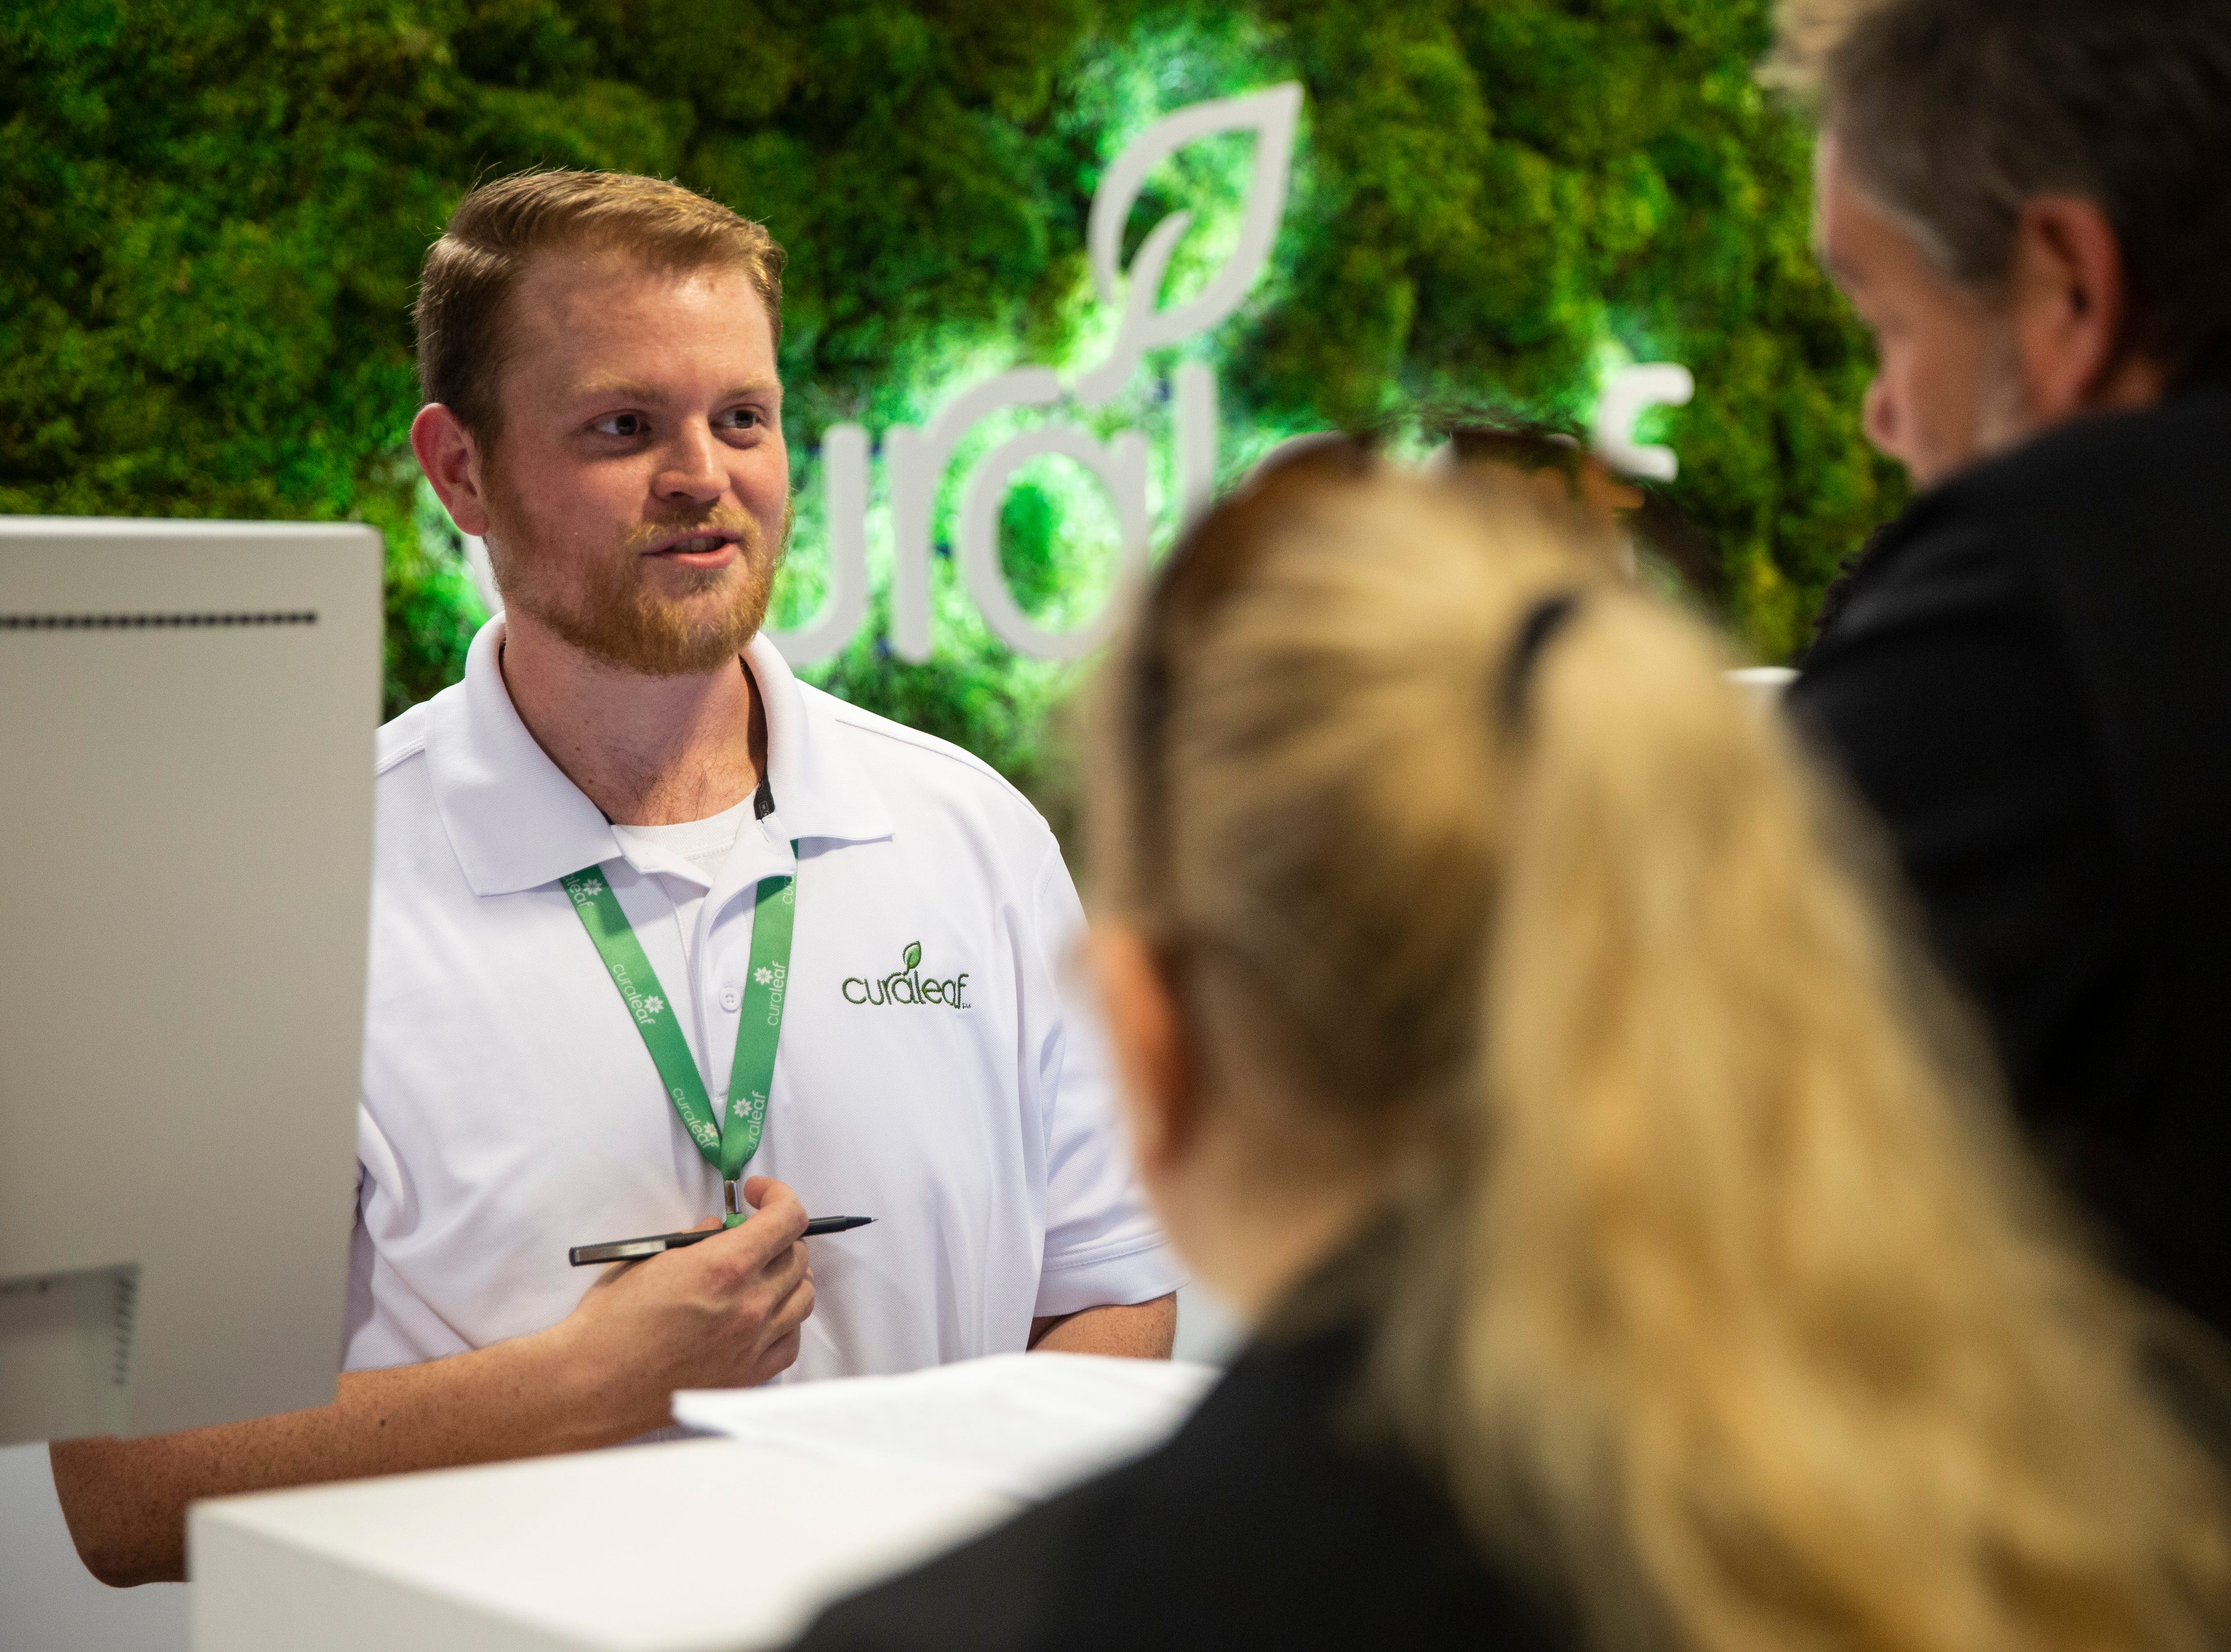 Chad Baker helps customers as they decide what products to buy during the grand opening of the Curaleaf medical marijuana dispensary in Bonita Springs on Thursday, January 17, 2019.